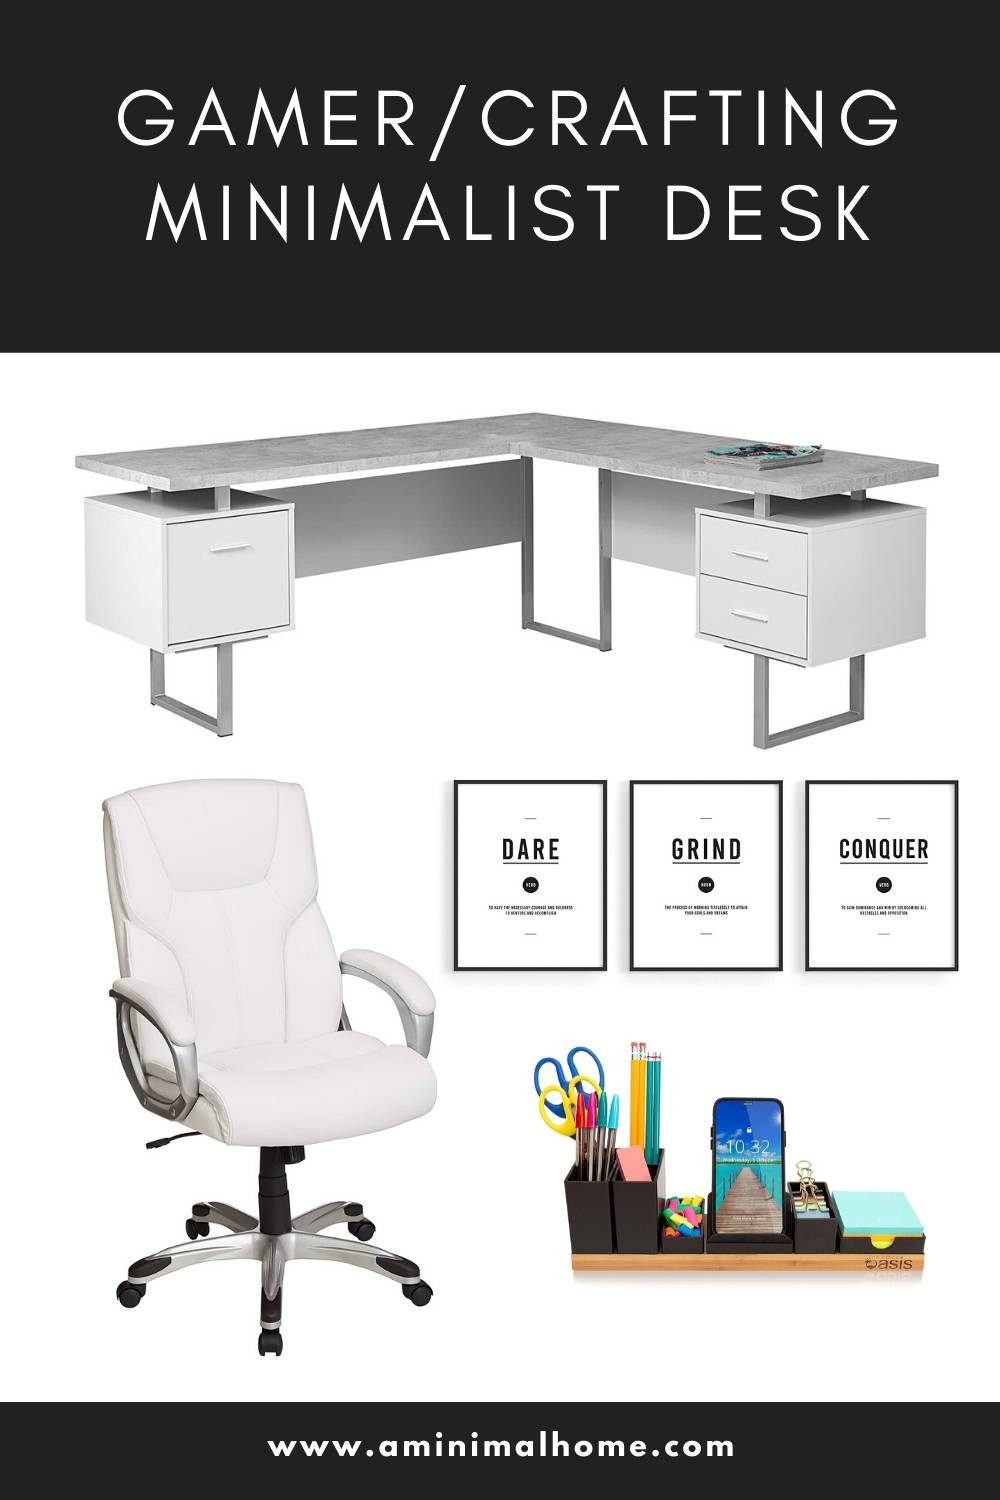 gamer crafting hobby minimalist home office